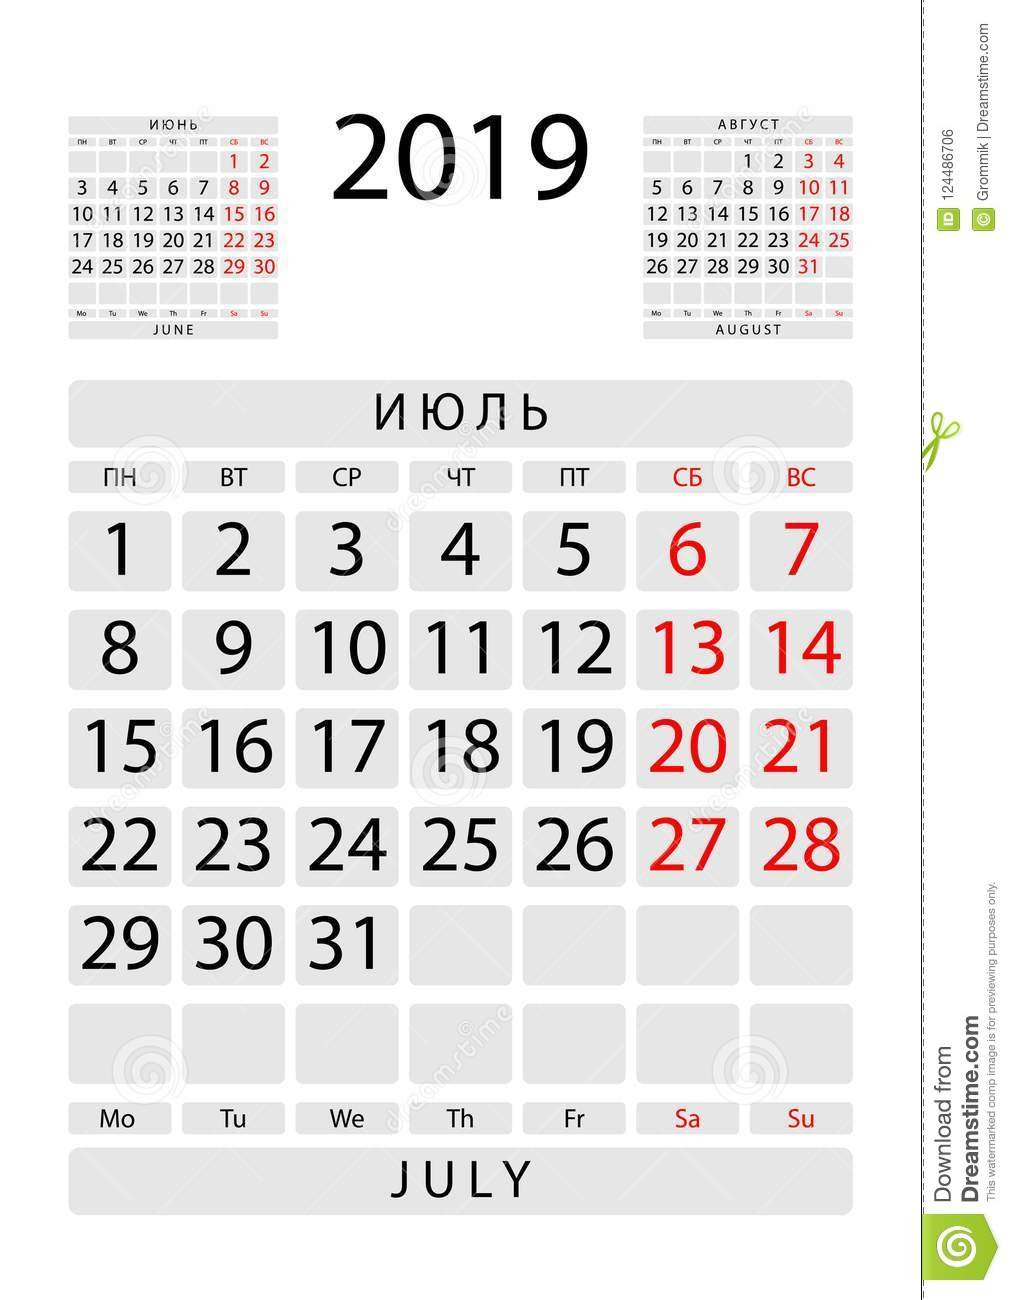 July 2019. Sheet Of A Calendar With The Months Of June And August July 4 2019 Calendar